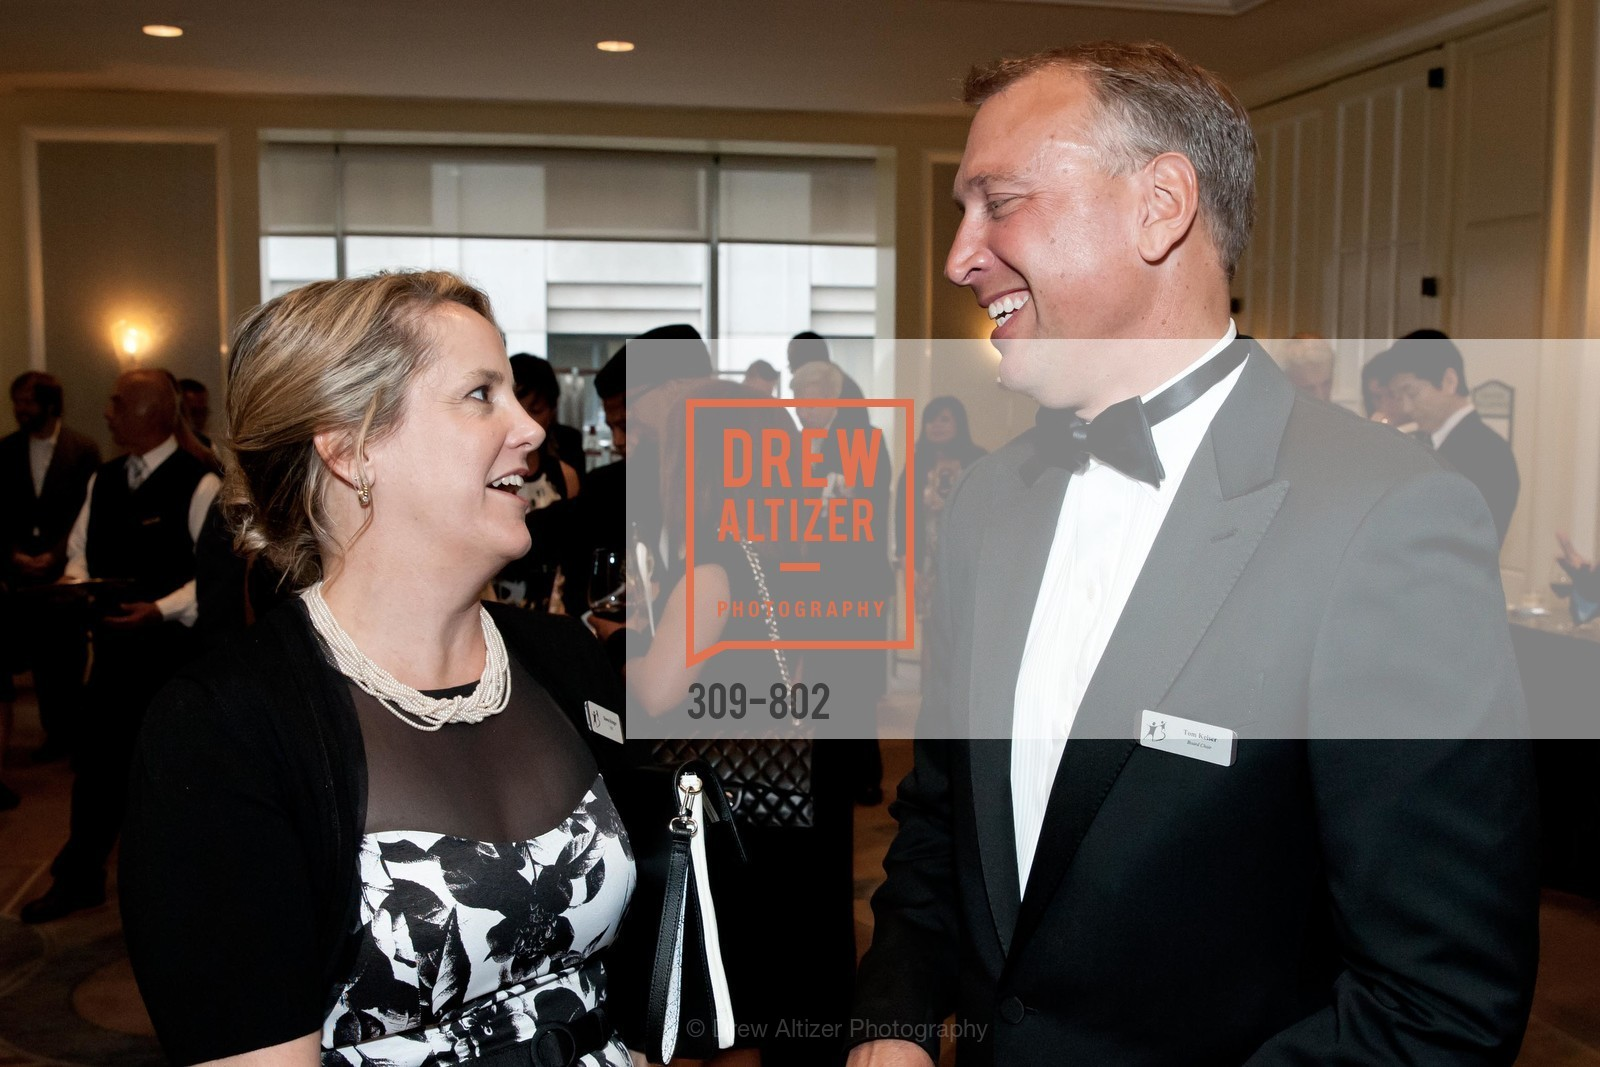 Dawn Kruger, Tom Keiser, MR PORTER Celebrate The San Francisco Issue of The Journal, US, April 24th, 2015,Drew Altizer, Drew Altizer Photography, full-service event agency, private events, San Francisco photographer, photographer California